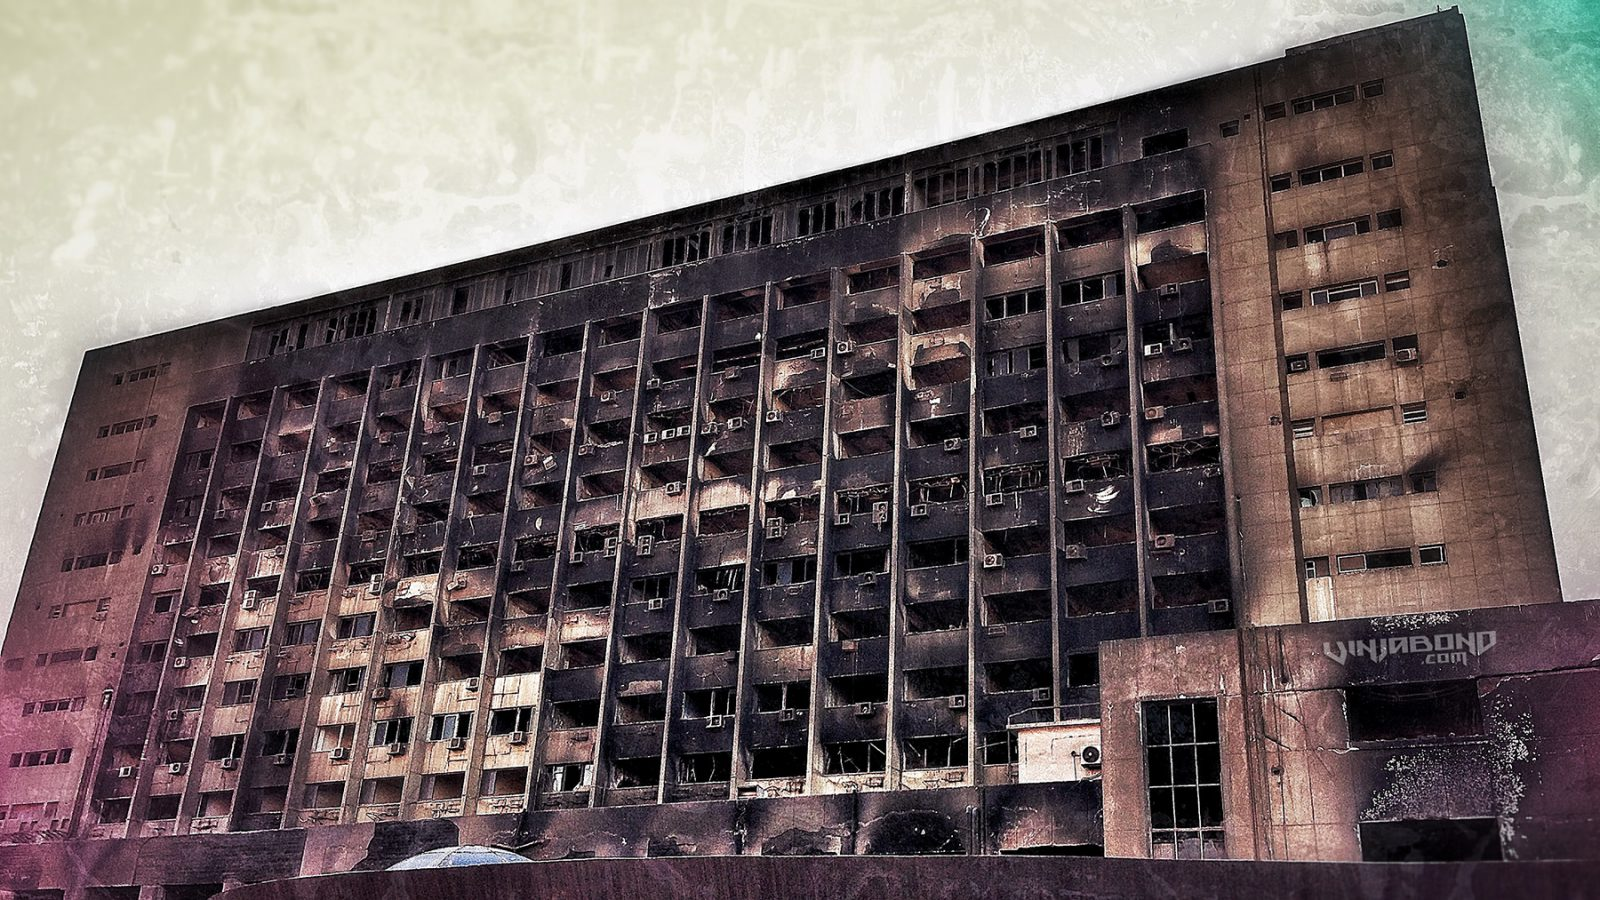 Burned-Out NDP Building in Cairo, Egypt